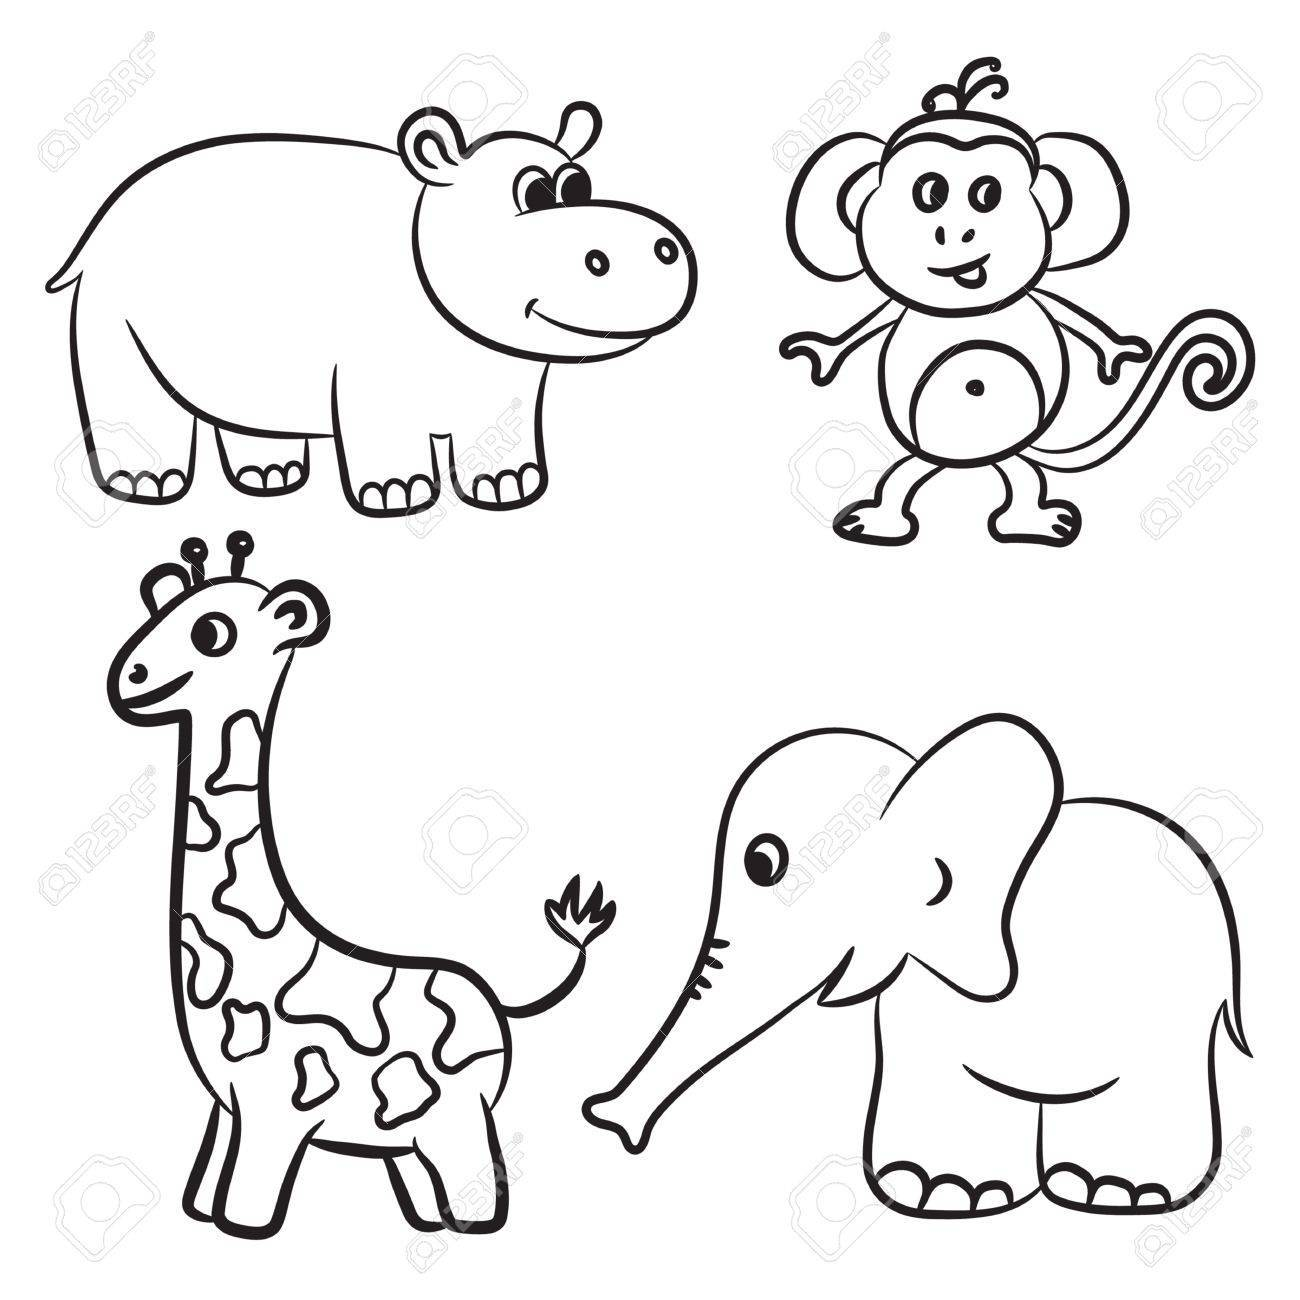 Zoo animals clipart black and white 5 » Clipart Portal.